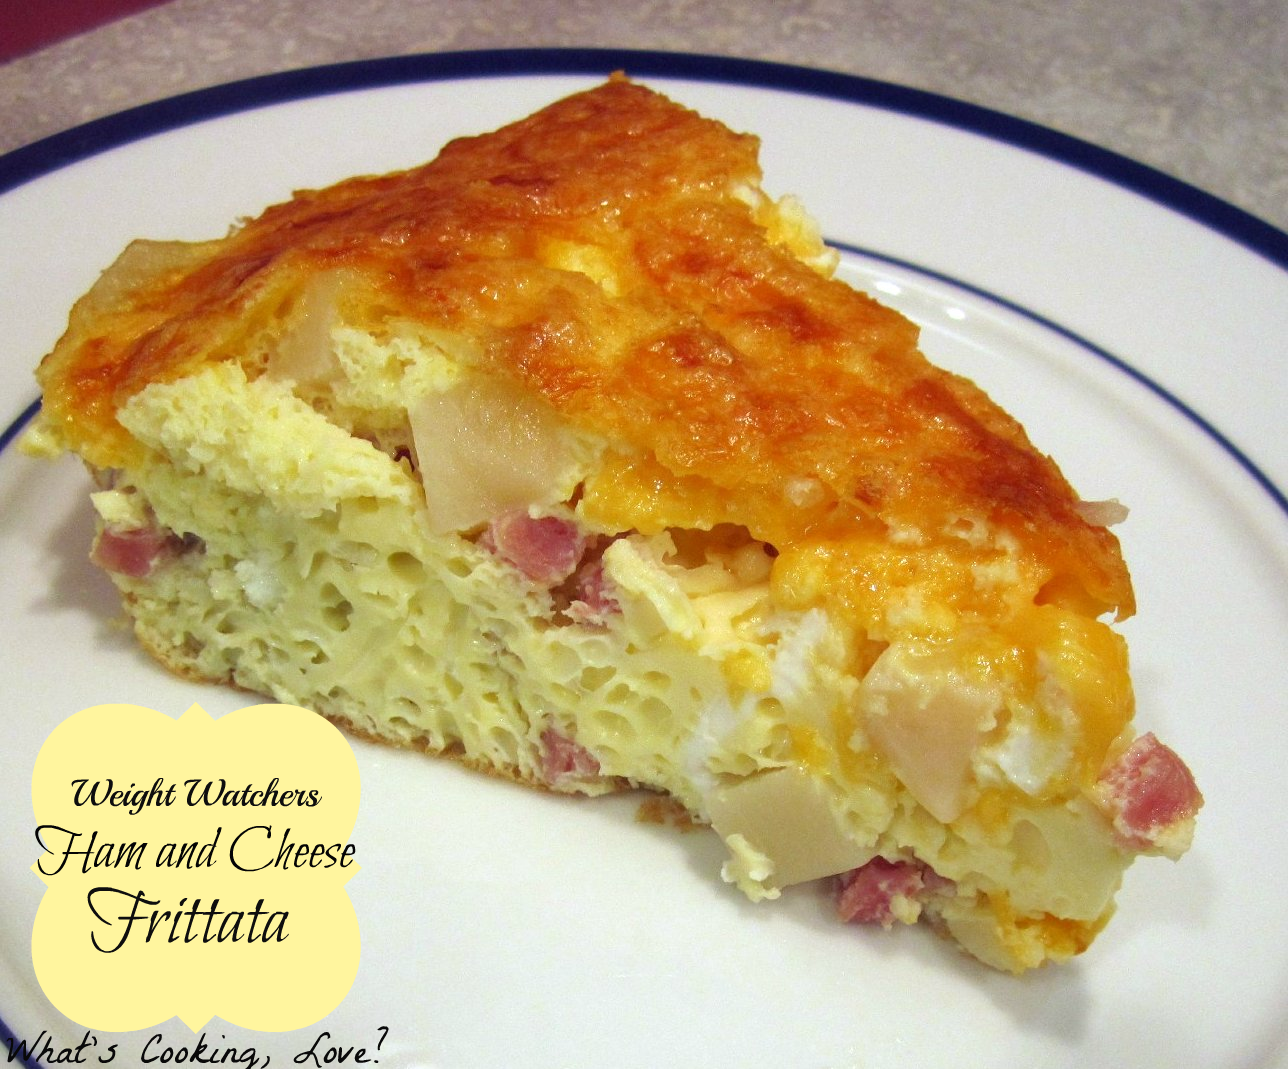 Weight Watchers Ham And Cheese Frittata Whats Cooking Love